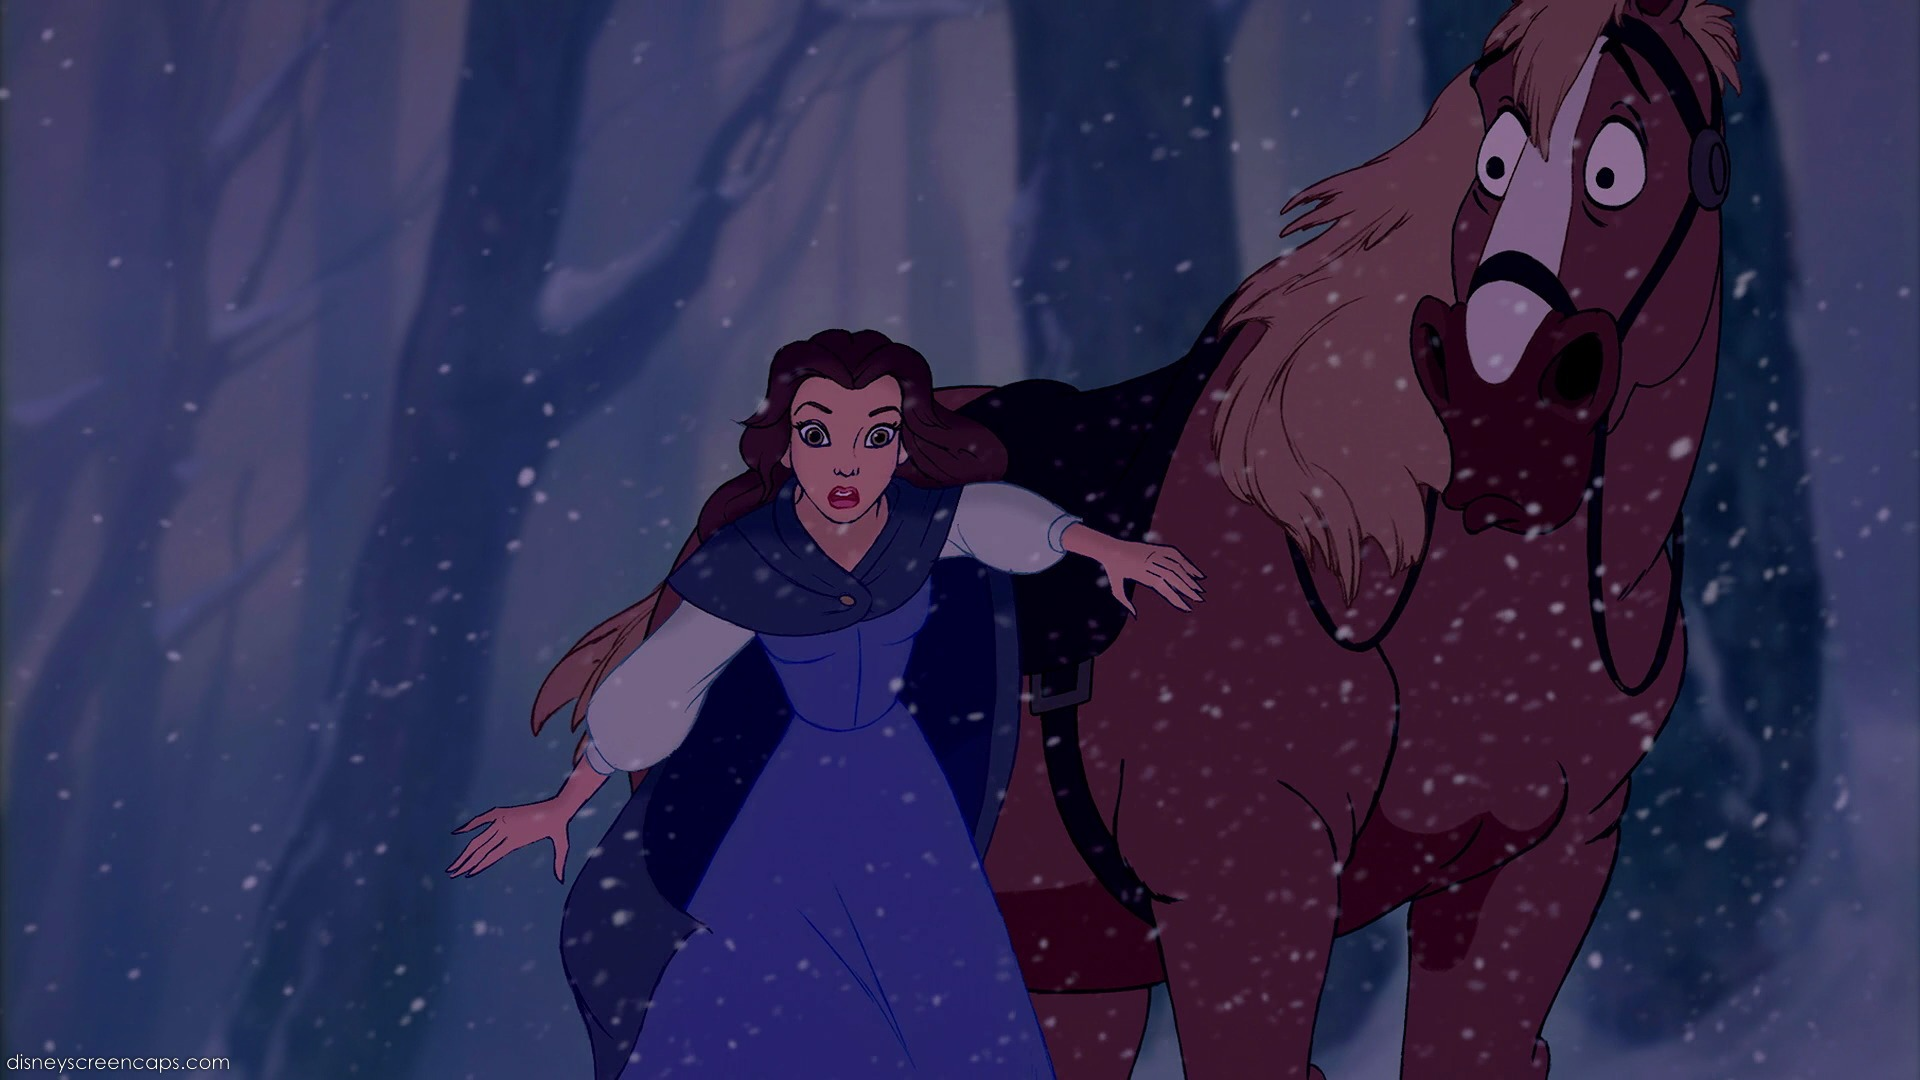 how well do you remember beauty and the beast? | playbuzz